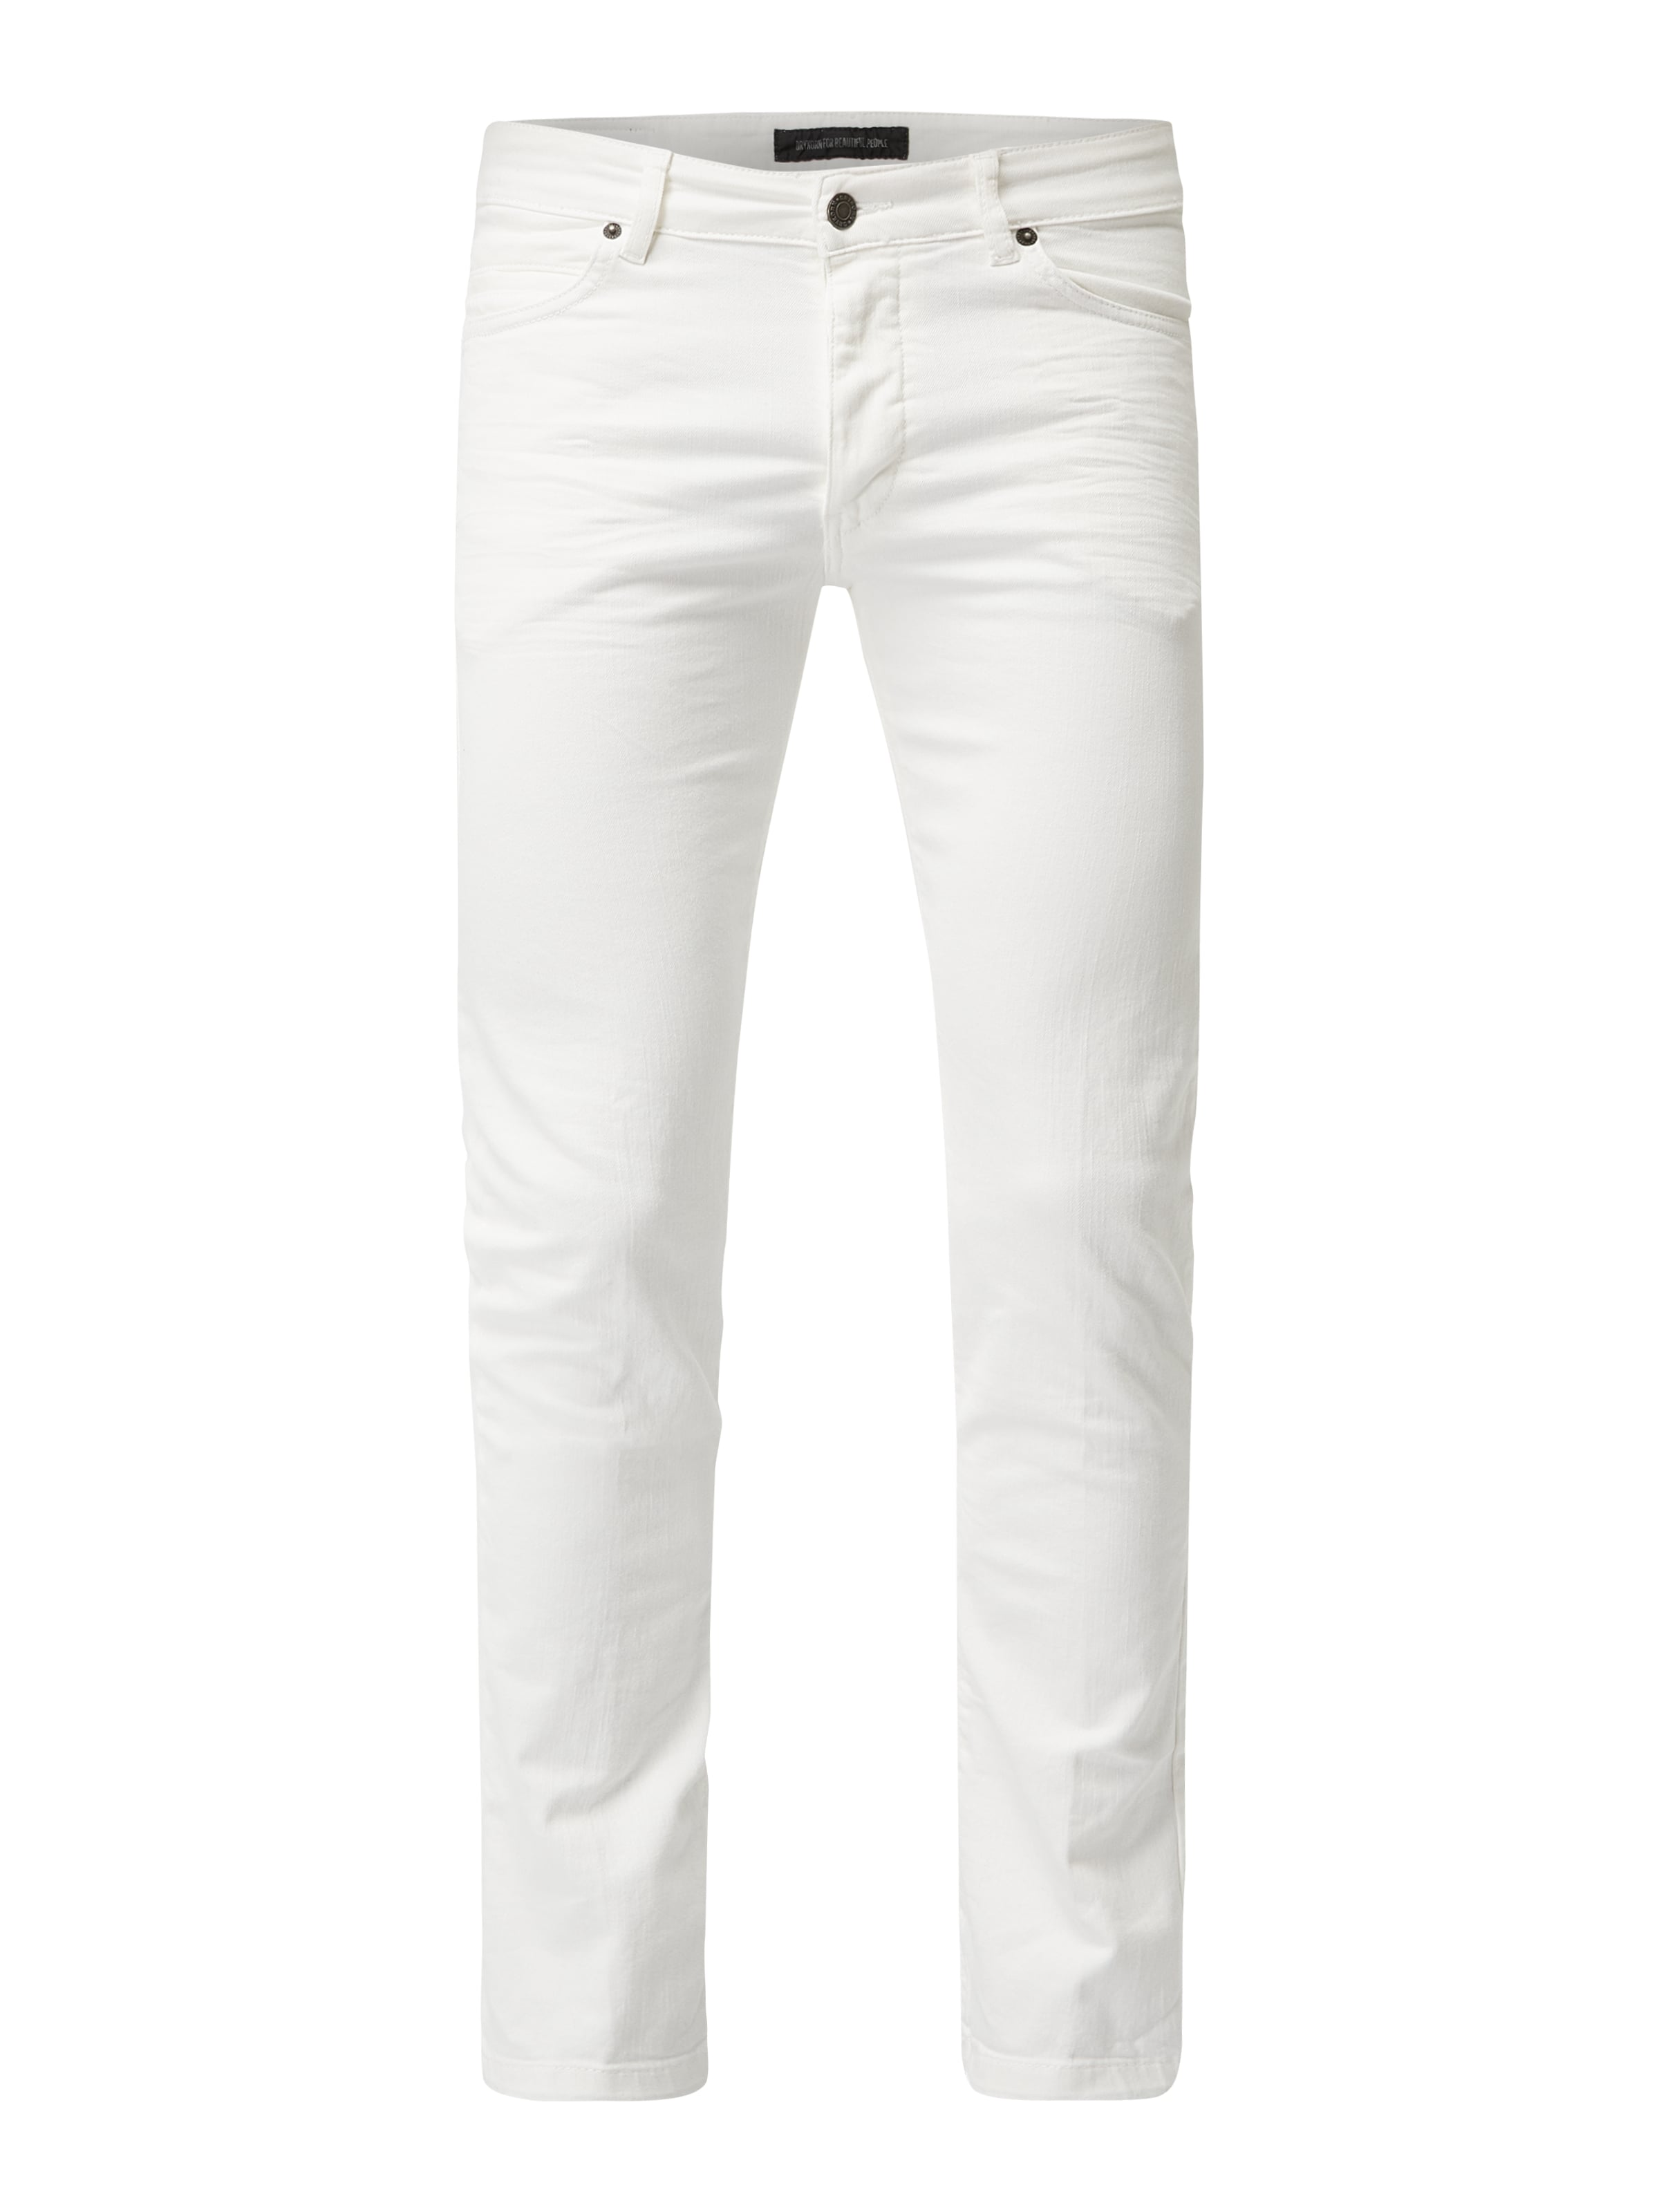 dbe84fbb5bba Drykorn - Coloured Skinny Fit Jeans - Weiß